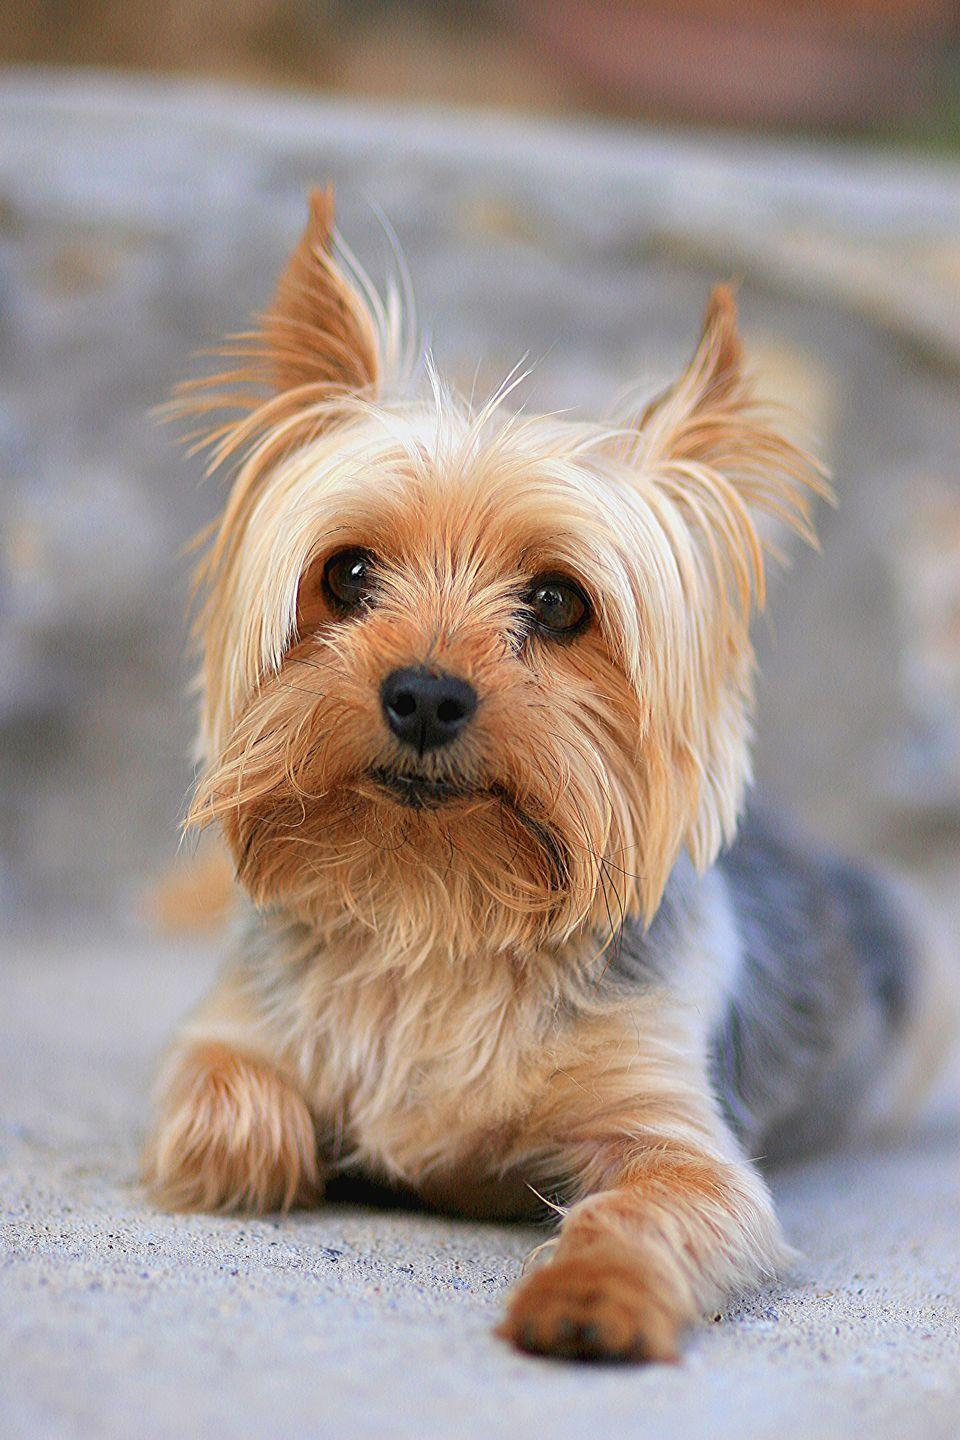 """<p>Sweet-faced little <a href=""""https://www.goodhousekeeping.com/life/pets/advice/g1829/toy-dog-breeds-miniature/?slide=5"""" rel=""""nofollow noopener"""" target=""""_blank"""" data-ylk=""""slk:Yorkies"""" class=""""link rapid-noclick-resp"""">Yorkies</a><span class=""""redactor-invisible-space""""> fit in purses and laps, but their small size packs a ton of attitude. Their fine hair has a texture that's more similar to humans' than other kinds of fur, so it won't make you sneeze. But groom-averse, beware: Yorkies do require regular brushing and maintenance to stay tangle-free and silky soft.</span></p>"""